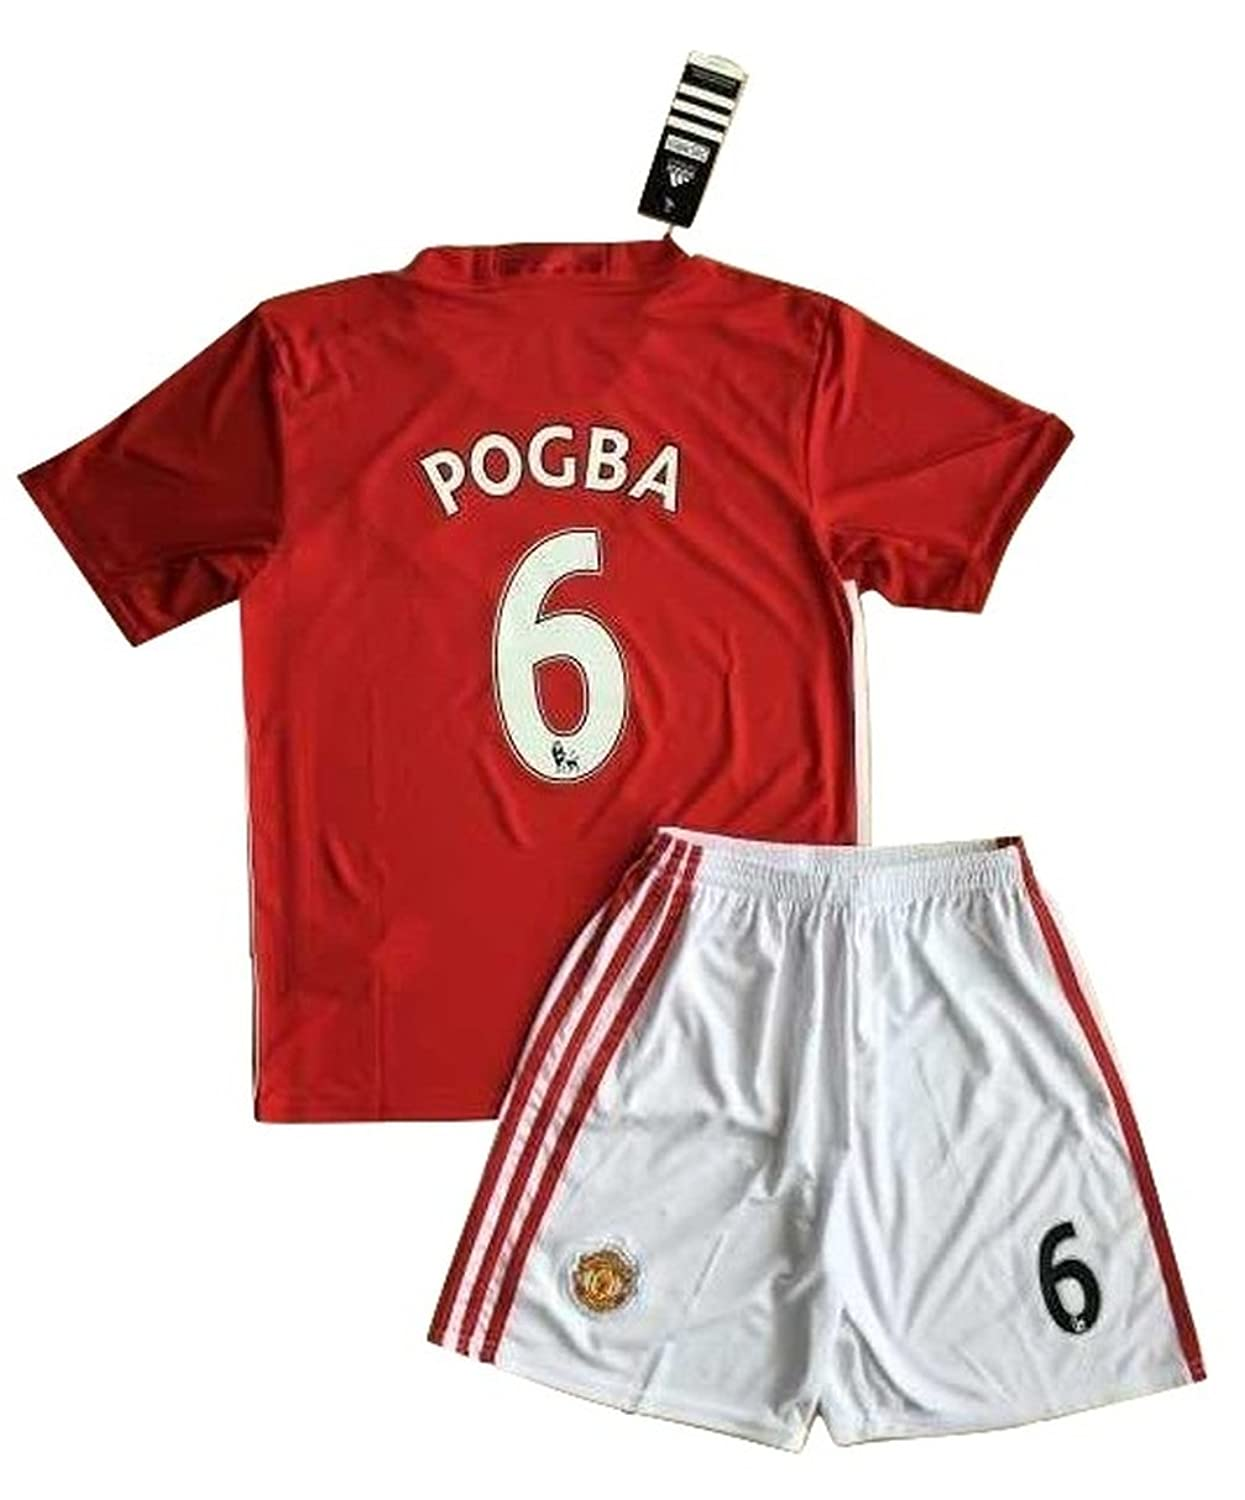 846978b76 ... Soccer Jersey Amazon.com Paul Pogba 6 Manchester United 20162017 Home  Jersey Shorts for Kids Clothing ...